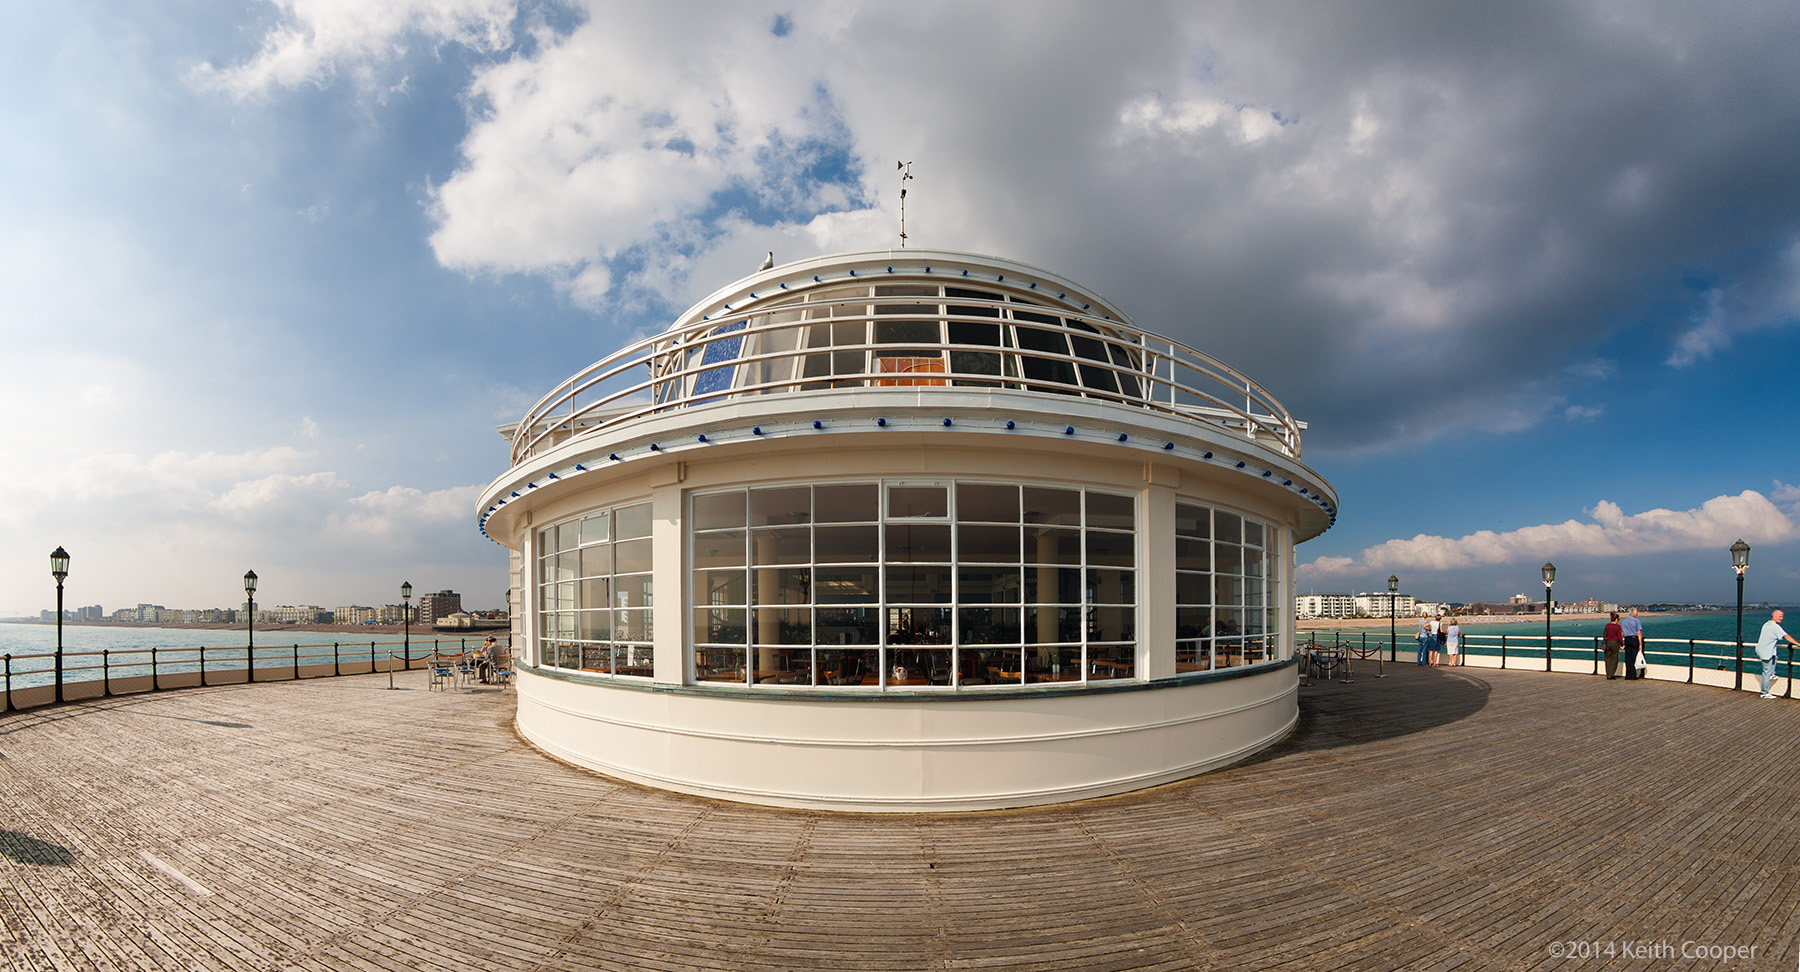 Restaurant at the end of the pier, Worthing